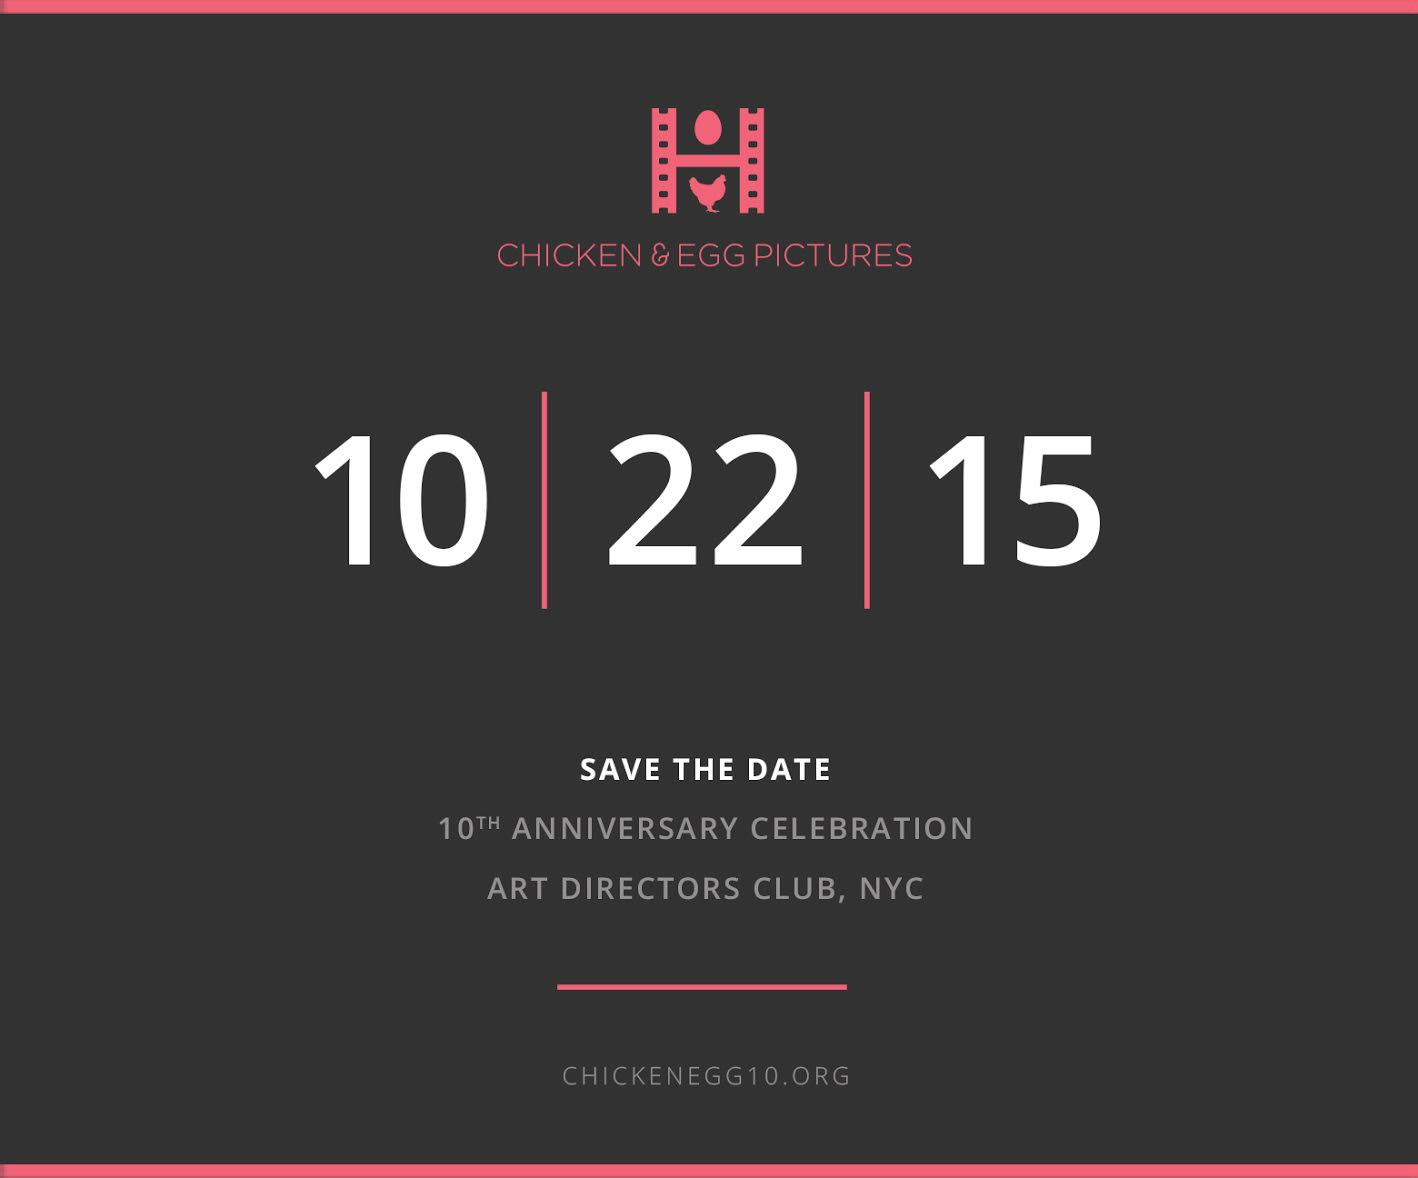 Save the Date Archives - Chicken & Egg Pictures